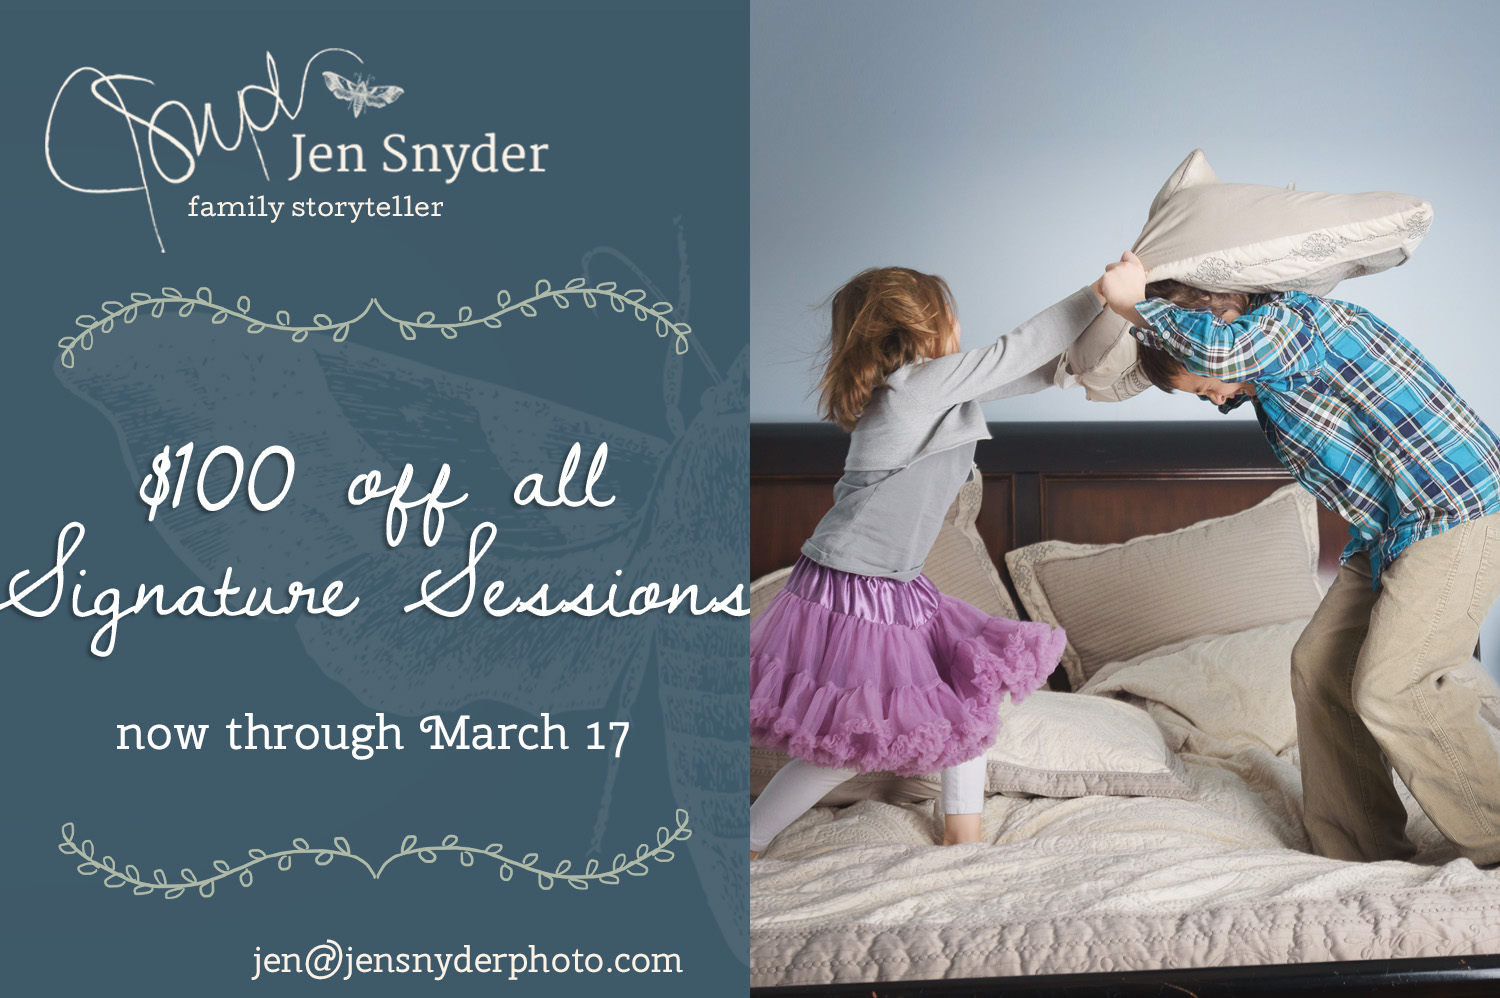 Jen Snyder, family storyteller - special discount on Signature Storytelling sessions http://www.jensnyderphoto.com